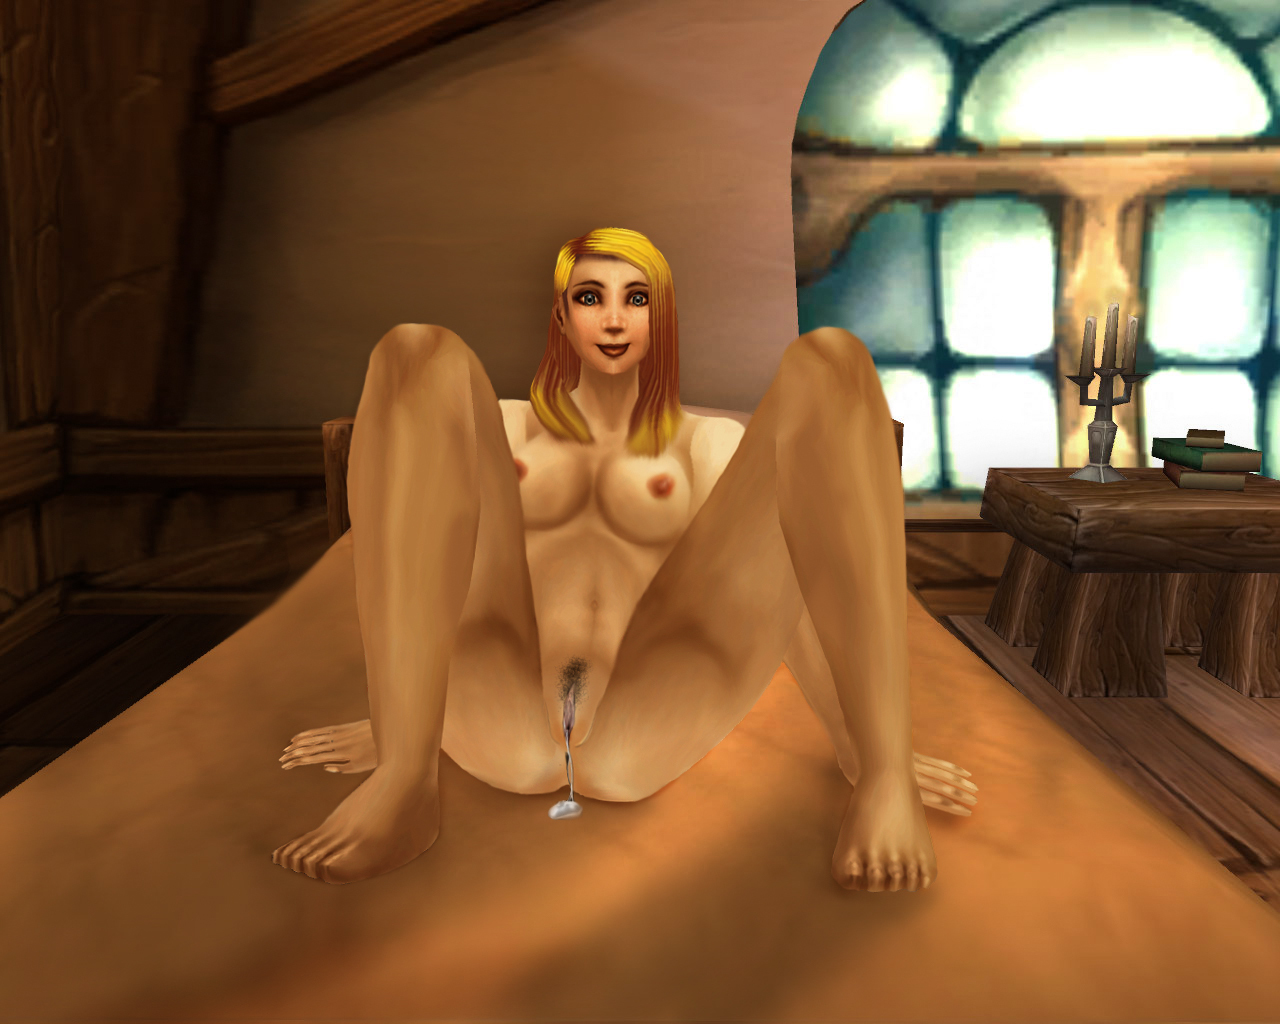 Elf's nude World of Porncraft archive smut pic